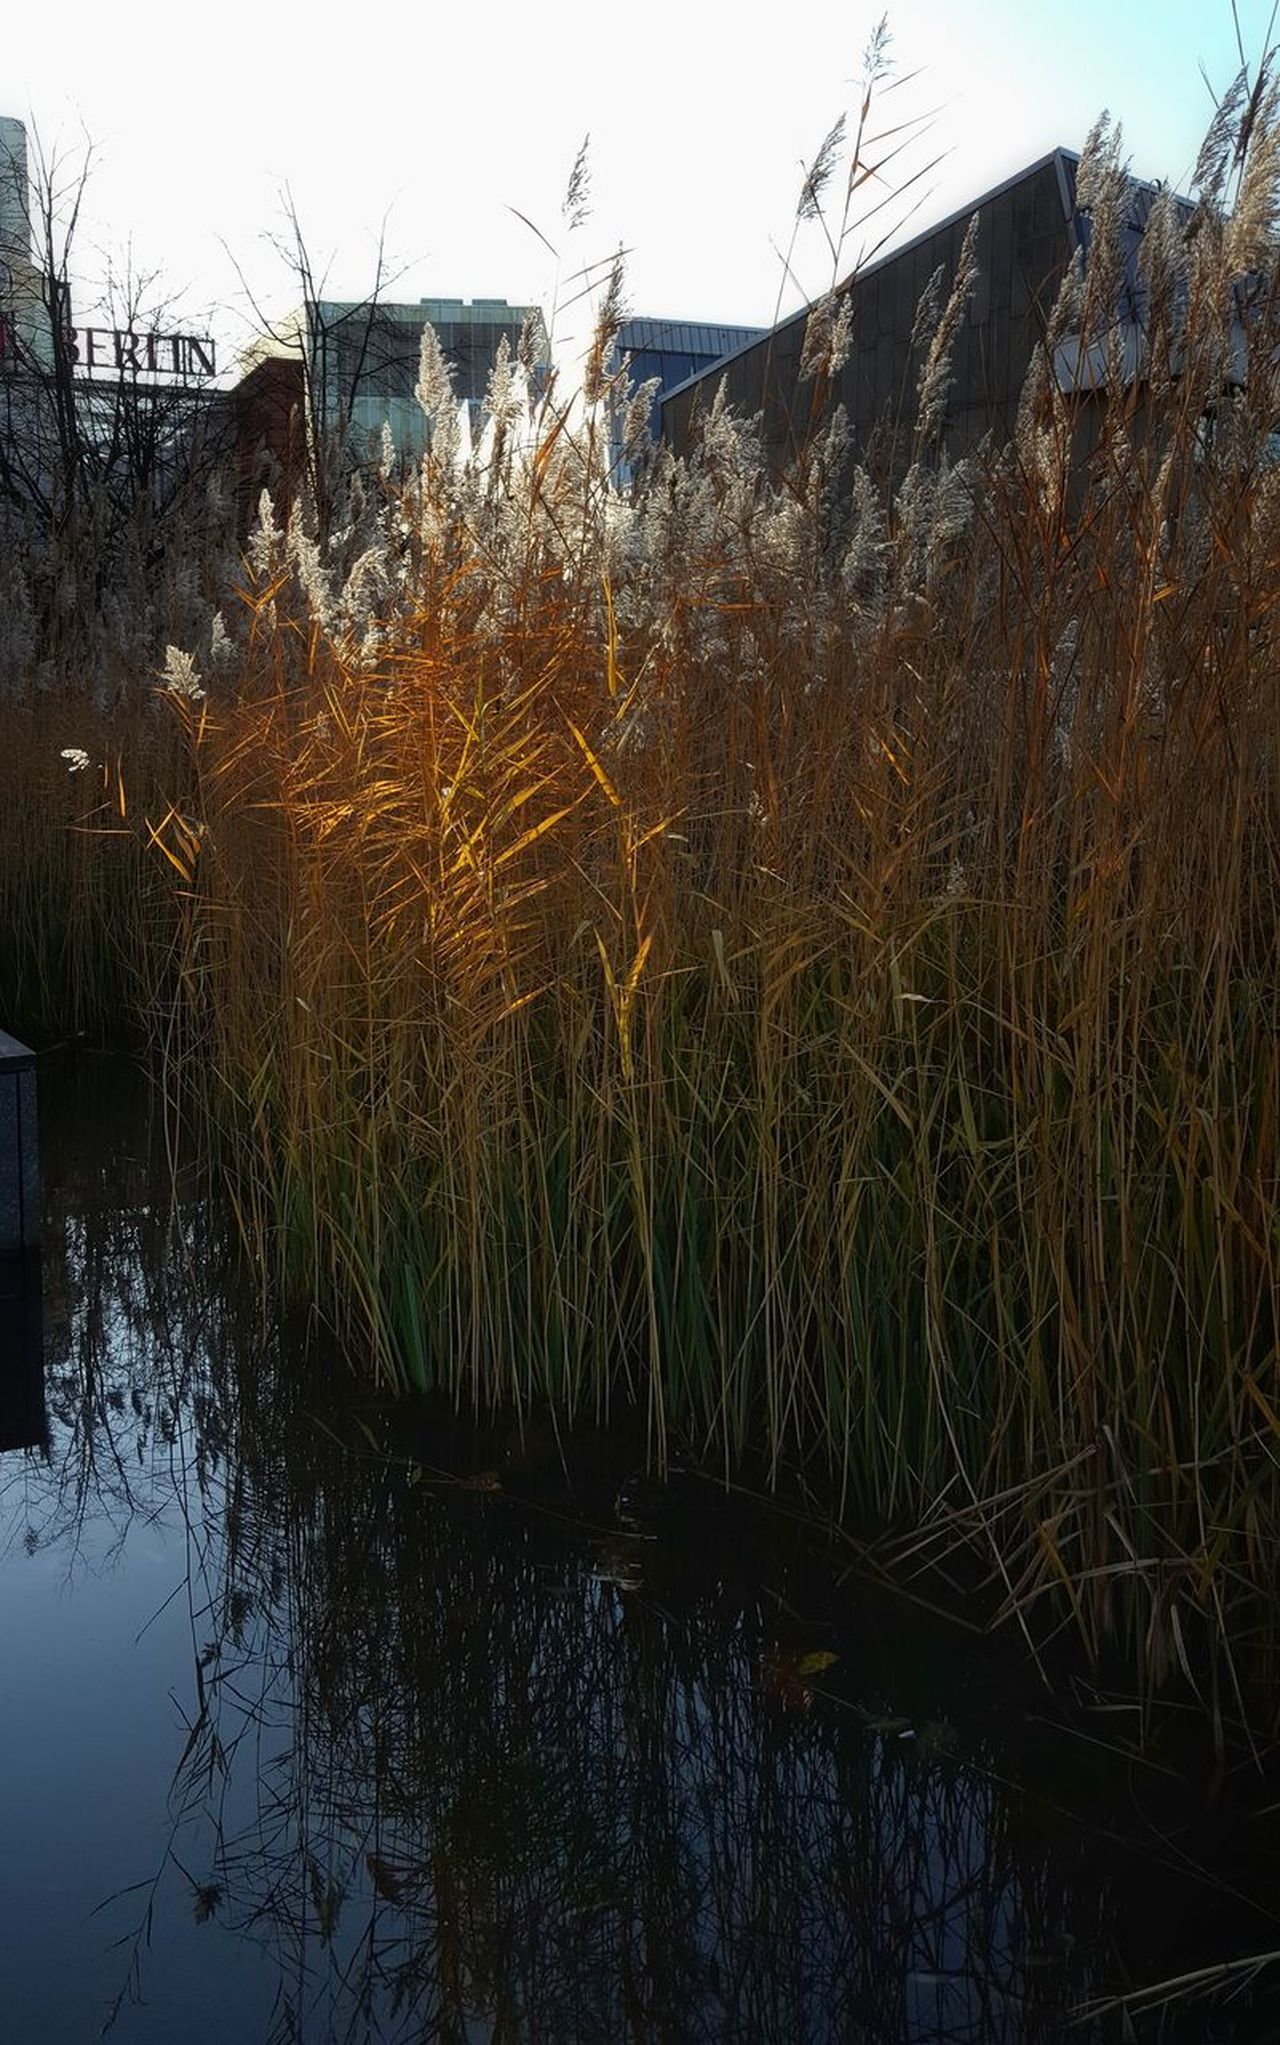 AntiM Berlin Mitte Grass In Water Water Reflections Architecture Beauty In Nature Berliner Ansichten Building Exterior Built Structure Day Grass Growth Lake Nature No People Outdoors Plant Potsdamer Platz Reflection Sky Tranquil Scene Tranquility Tree Water